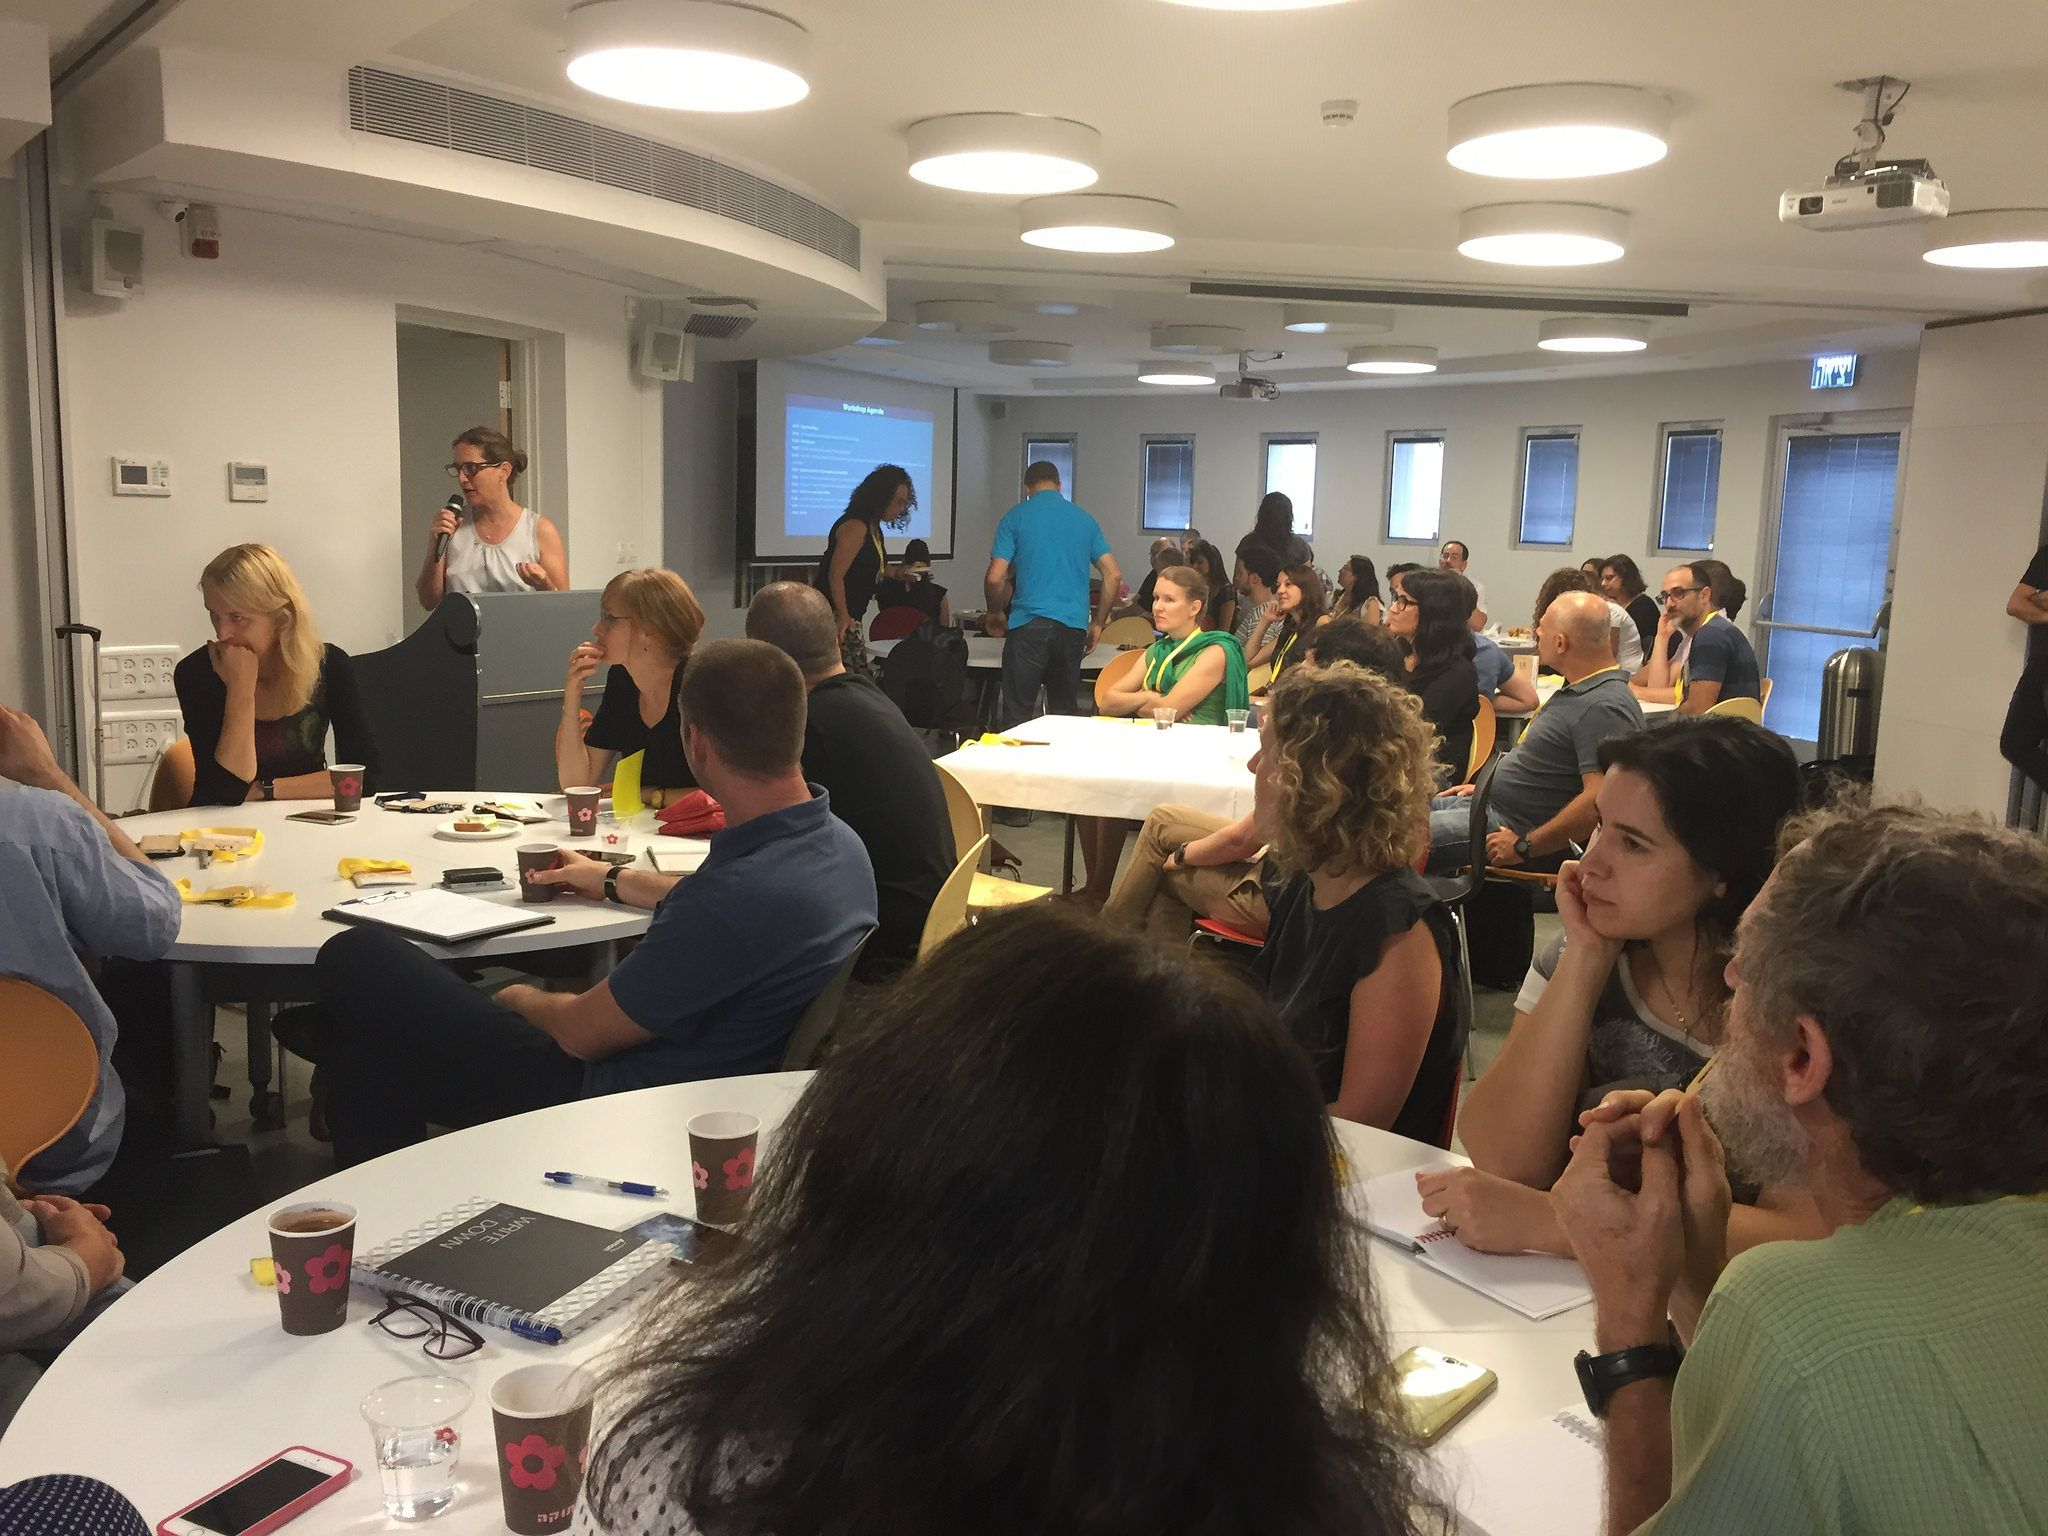 UX Strategy Workshop that I facilitated on September 9th, 2015 in Tel Aviv. It was attended by 75 awesome Israelis!  Read more about it what we covered here: http://edge2015.uxsalon.com/ux-strategy-workshop/